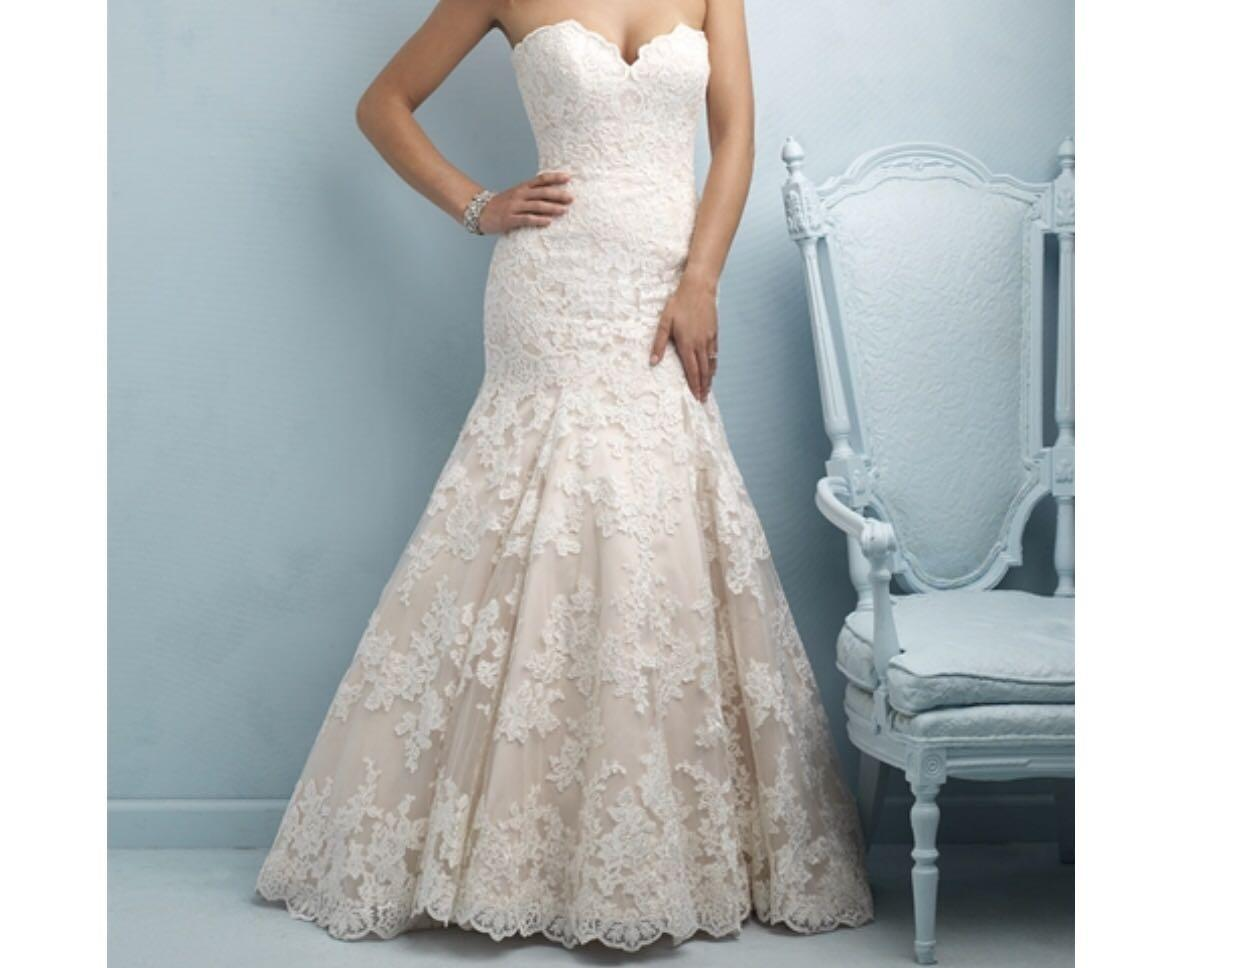 Lovely Cheap Wedding Dresses Atlanta Photos - Wedding Ideas ...